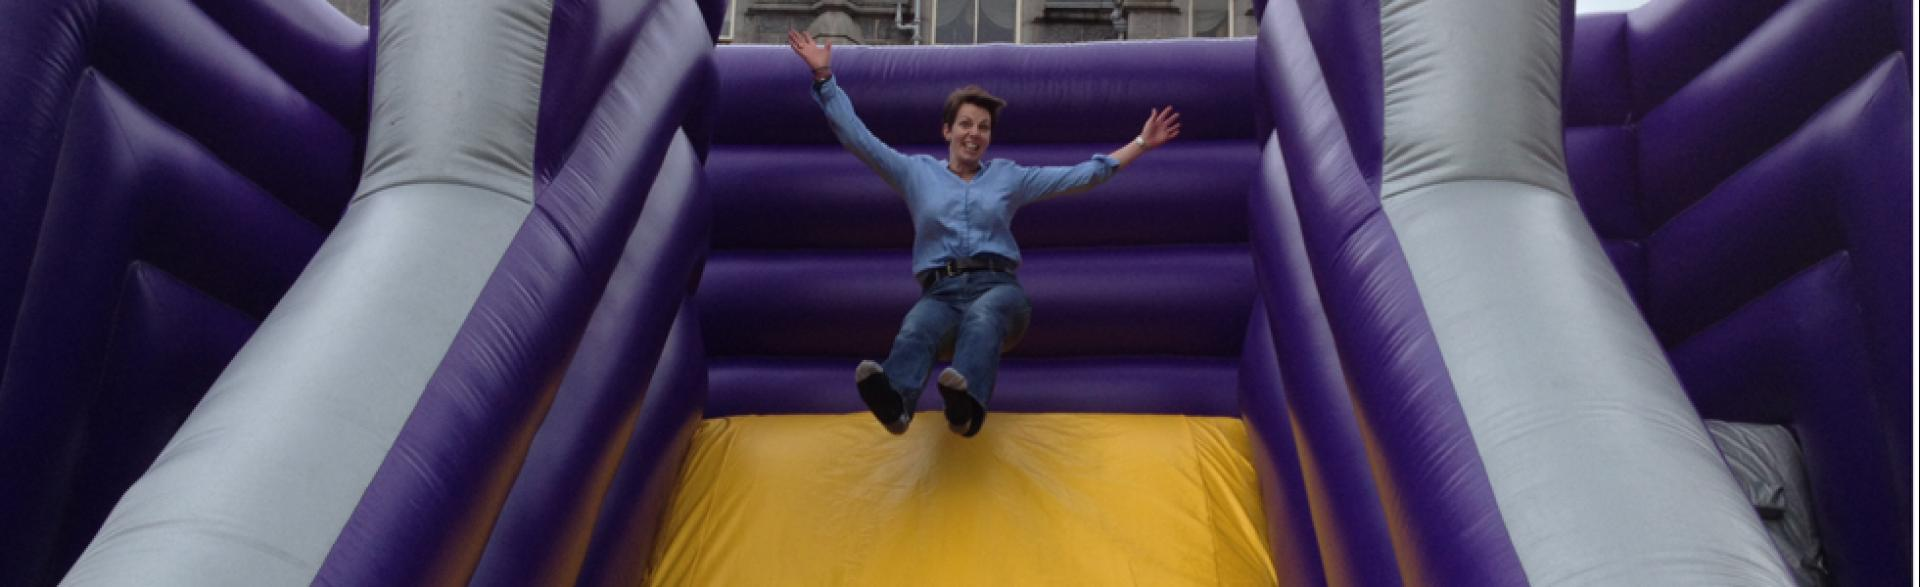 Corporate Family Fun Day, Aberdeen, July 2014